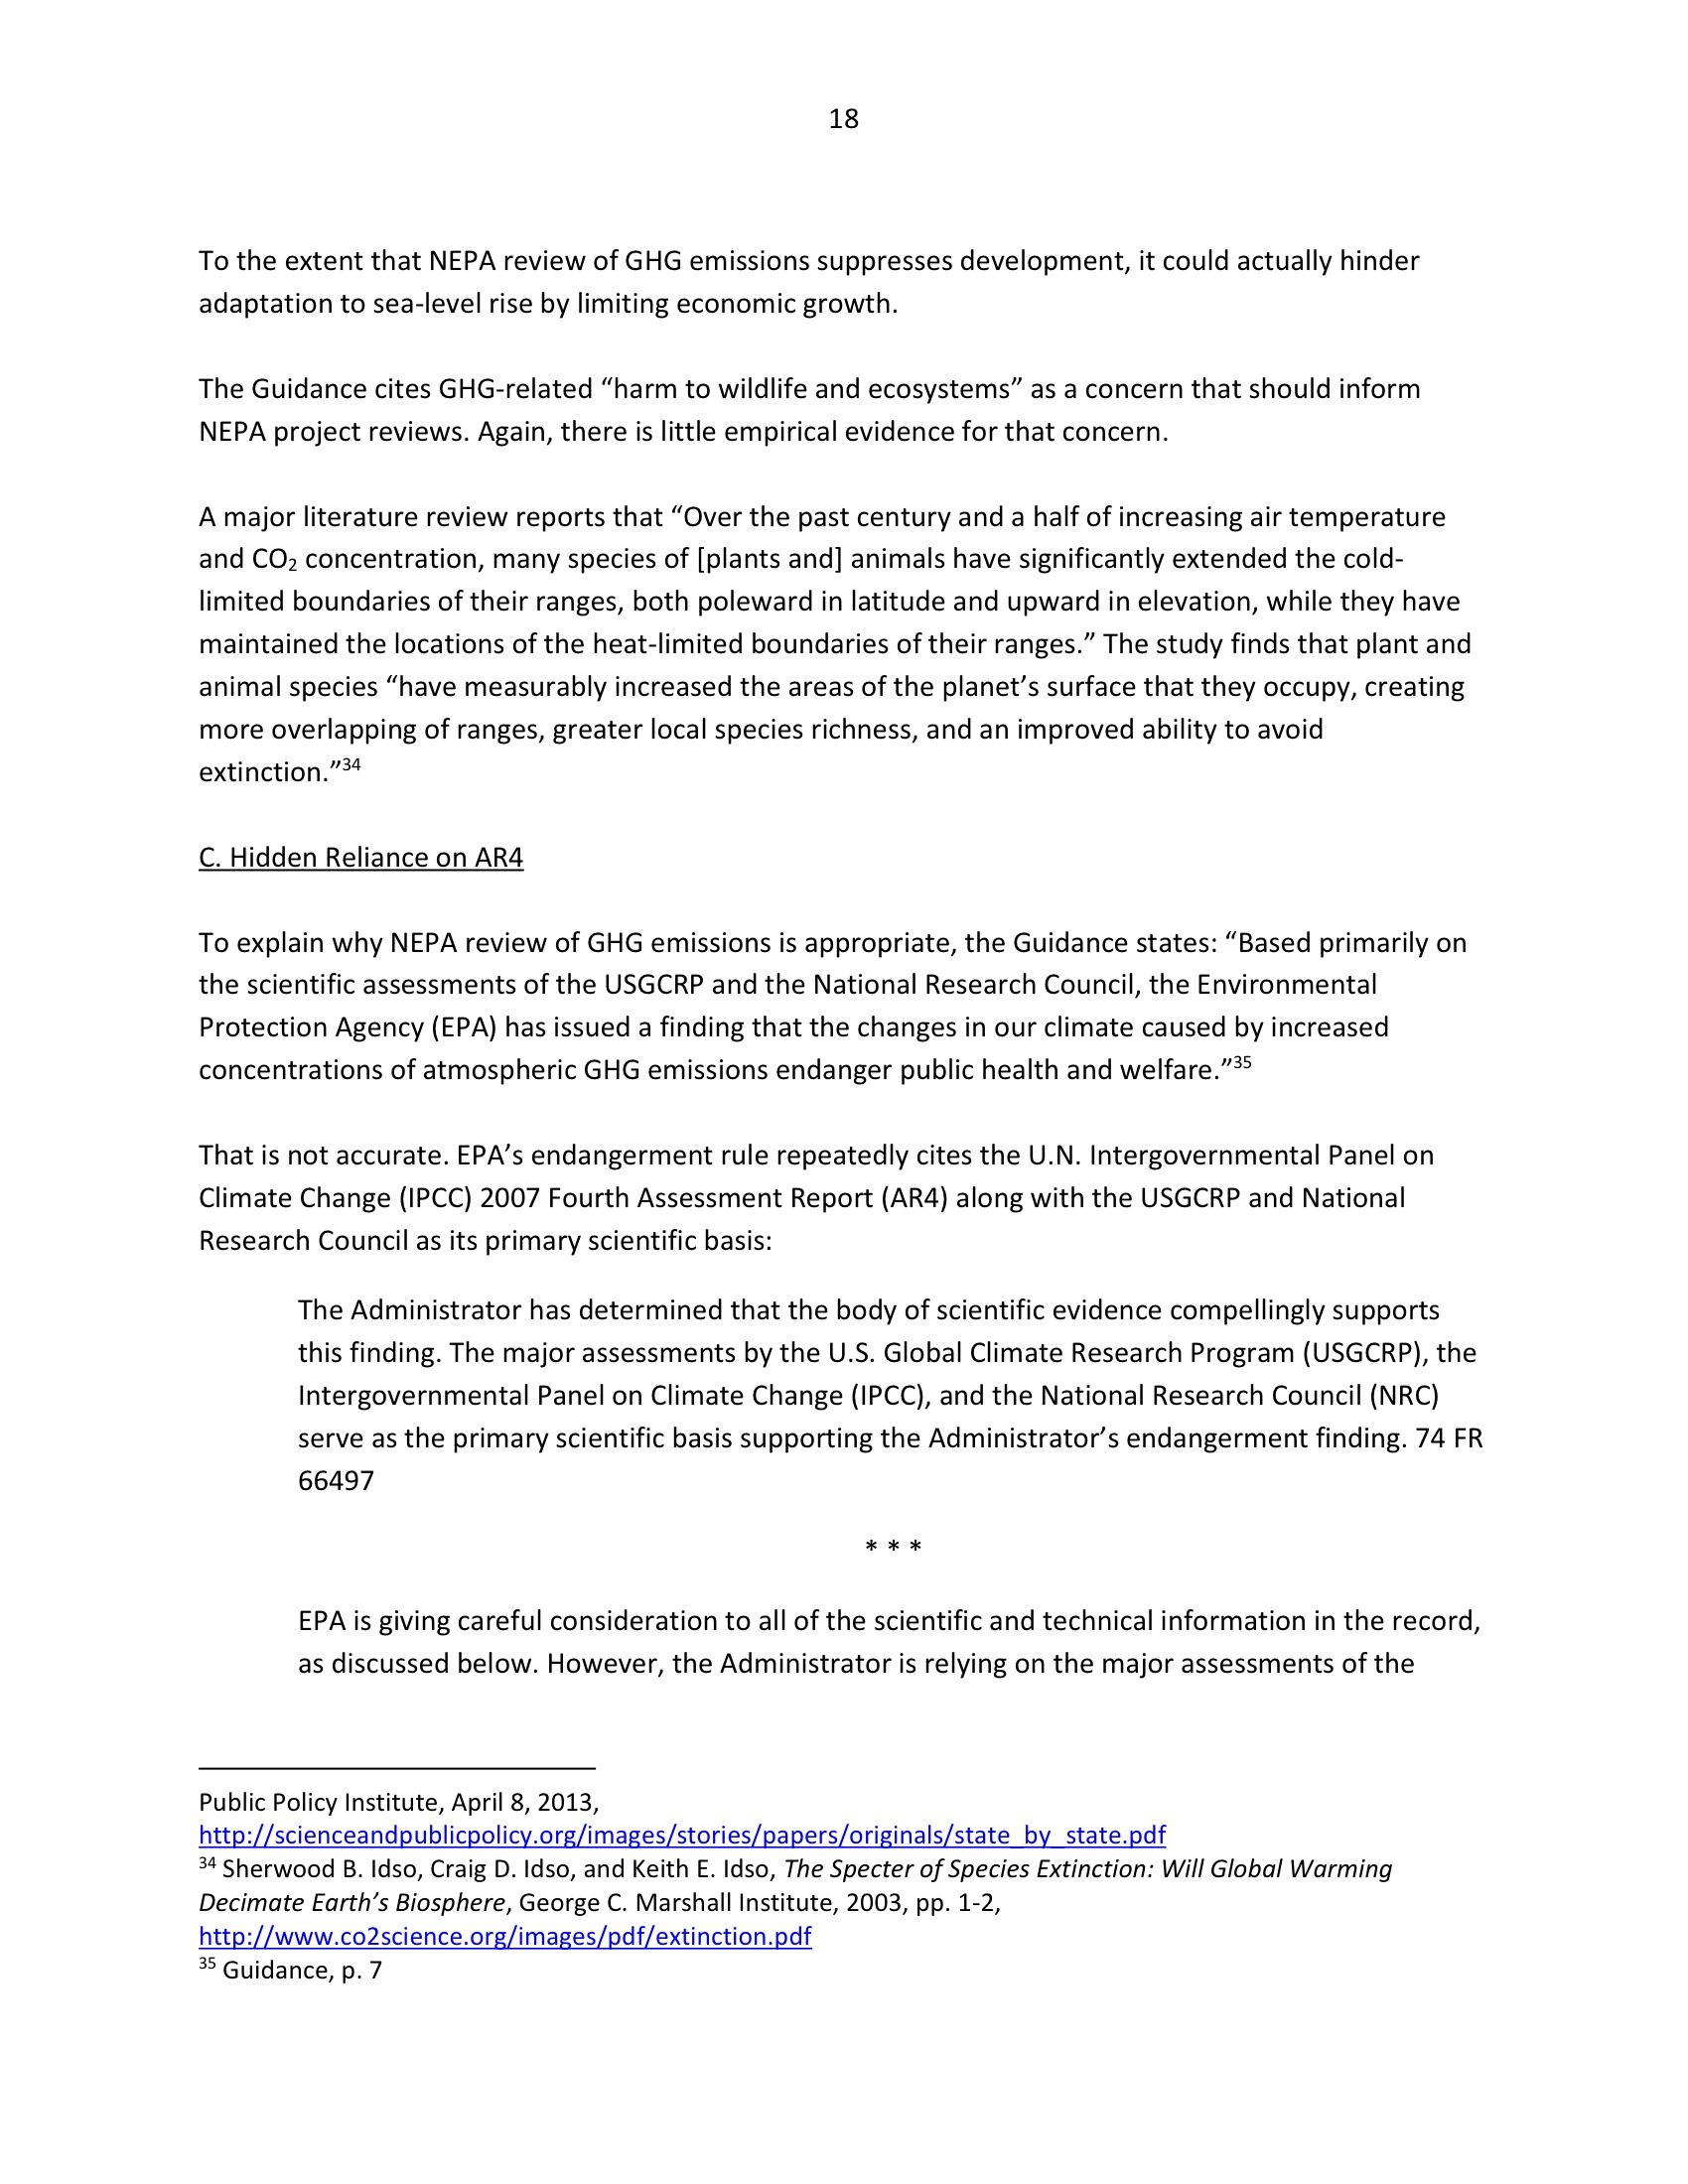 Marlo Lewis Competitive Enterprise Institute and Free Market Allies Comment Letter on NEPA GHG Guidance Document 90-18